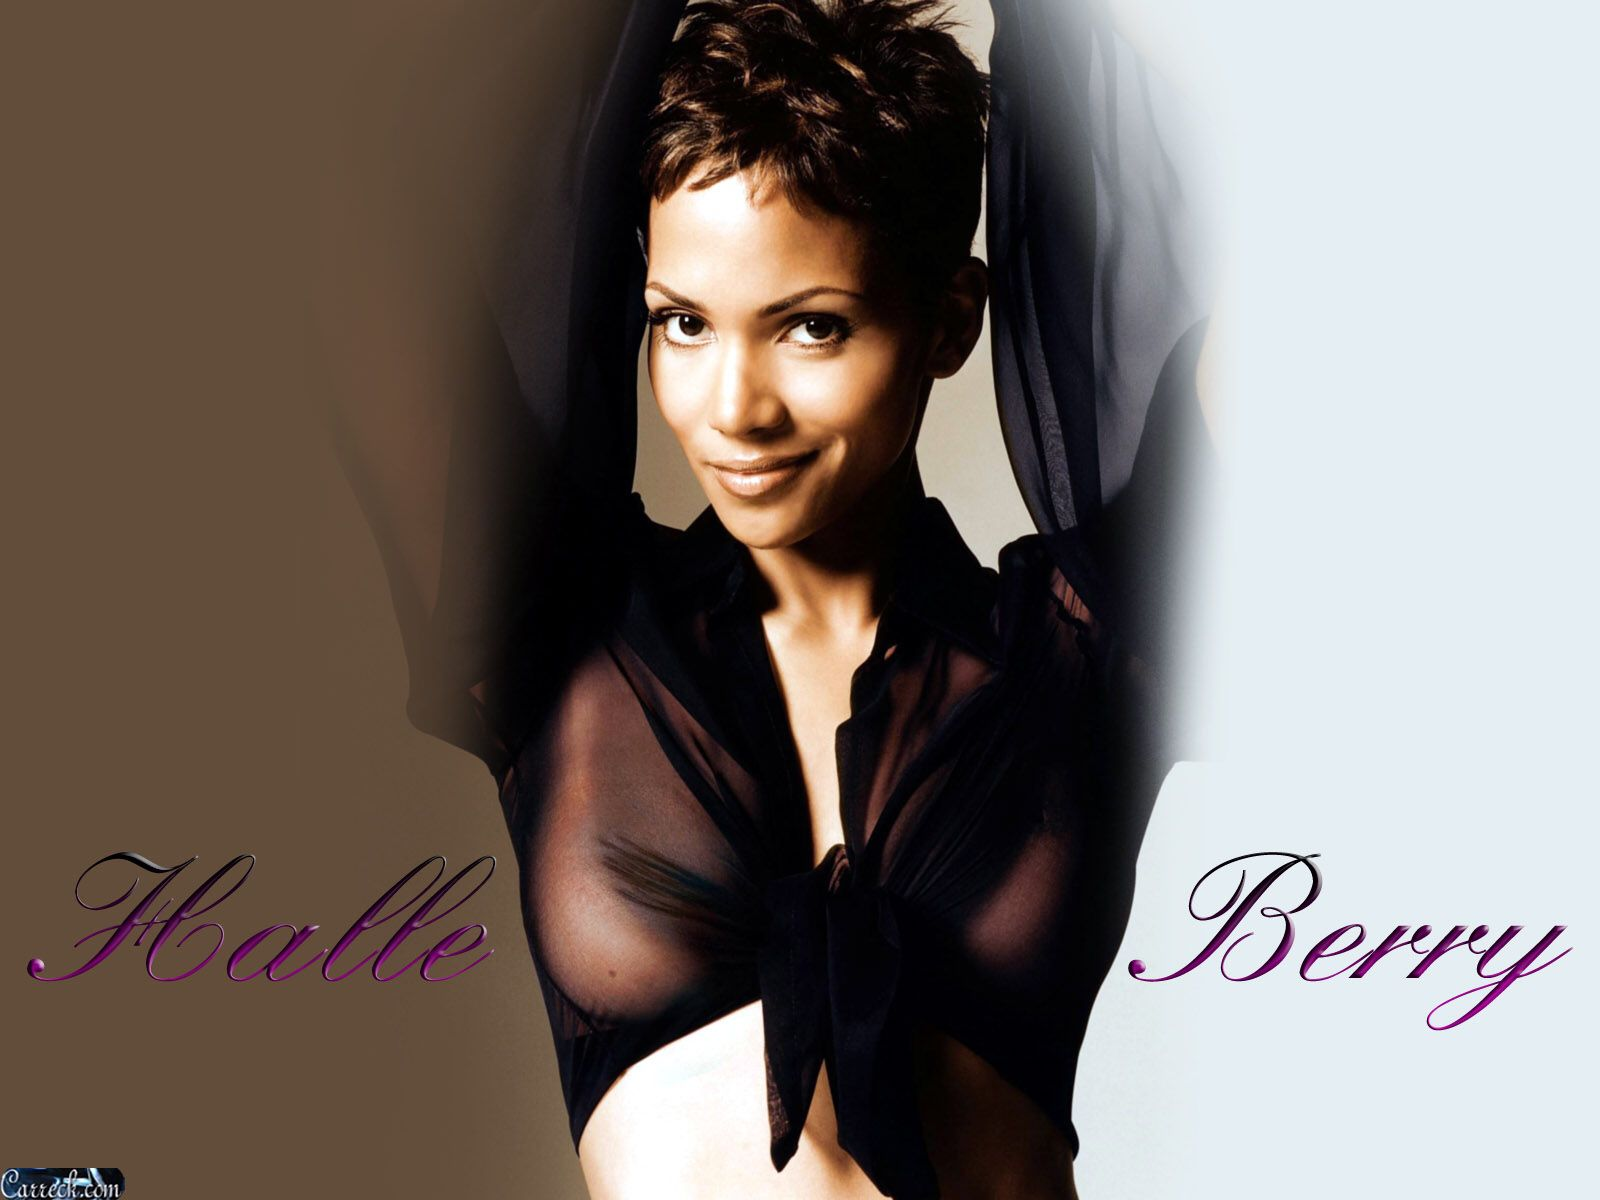 Halle Berry Images Halle Berry Hd Wallpaper And Background Photos 24116071 Halle Berry Images Halle Berry Halle